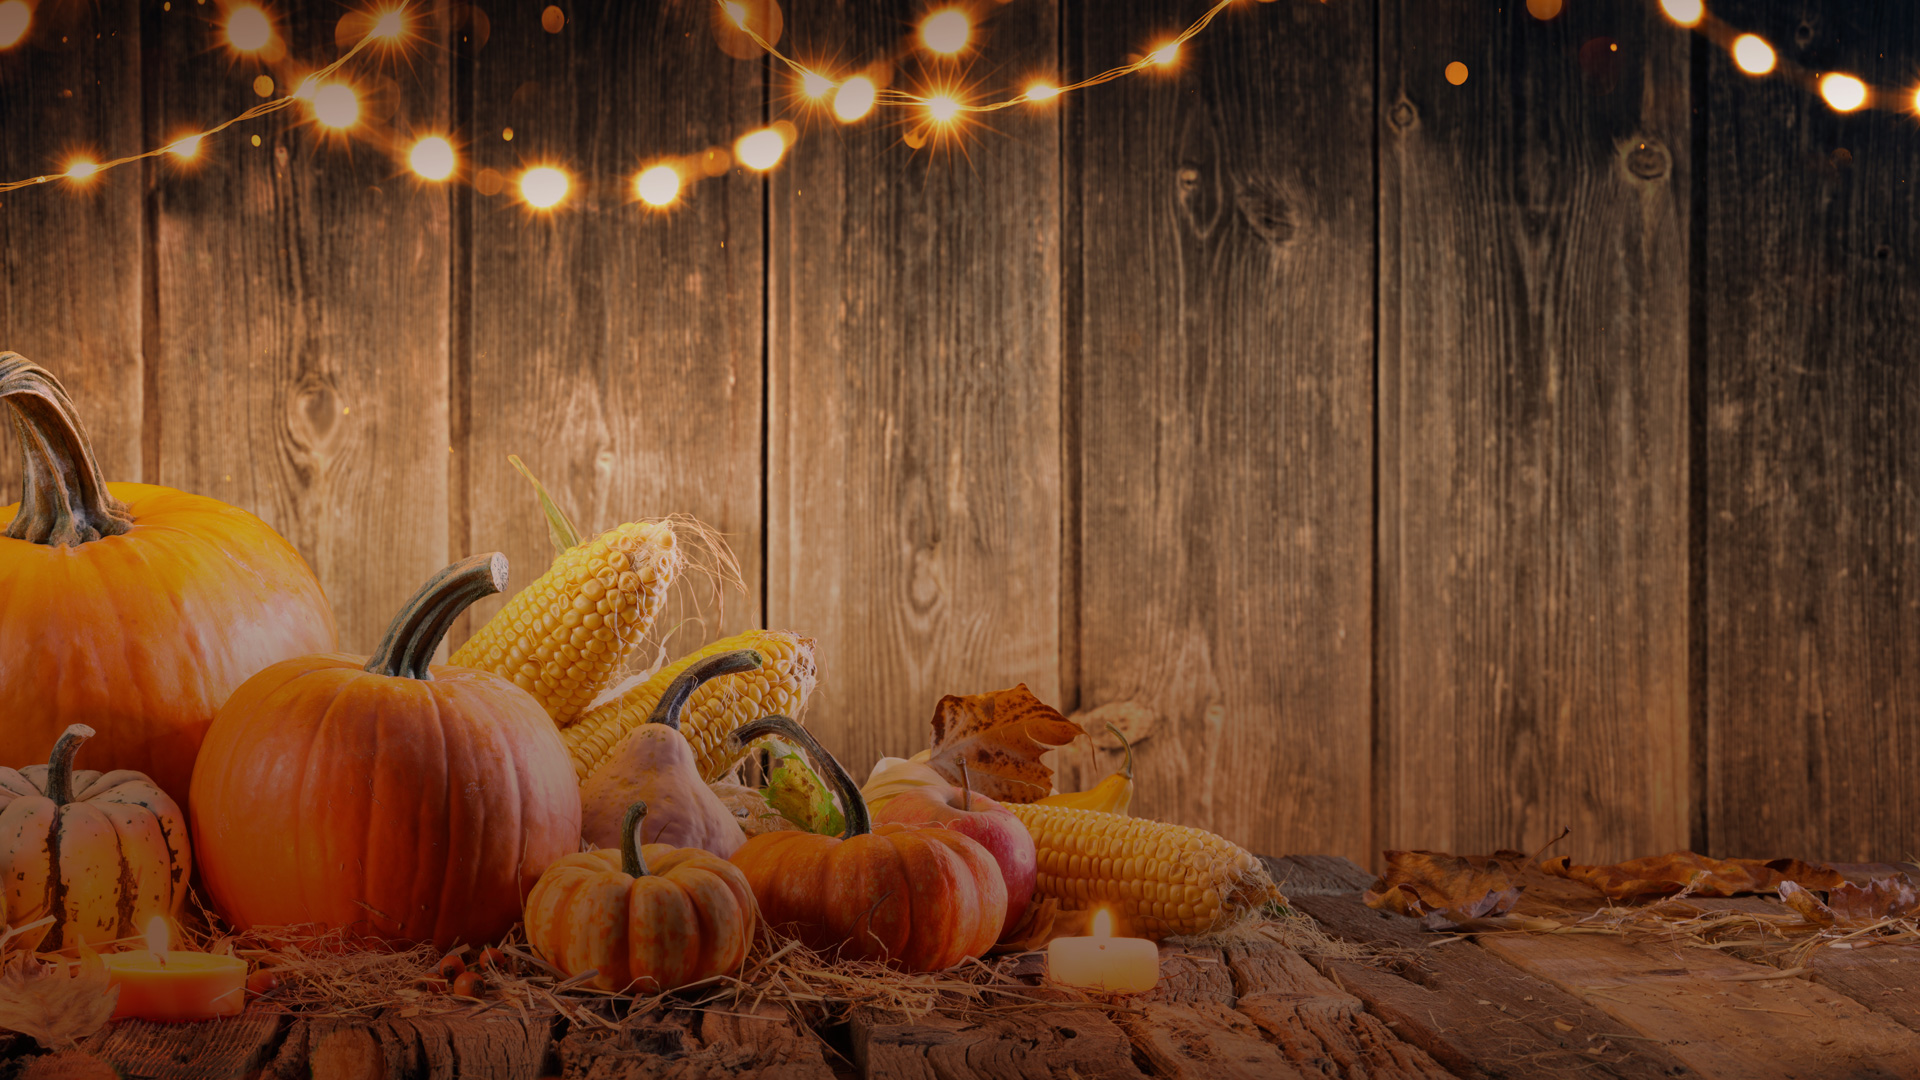 Thanksgiving2019Promo01-noText